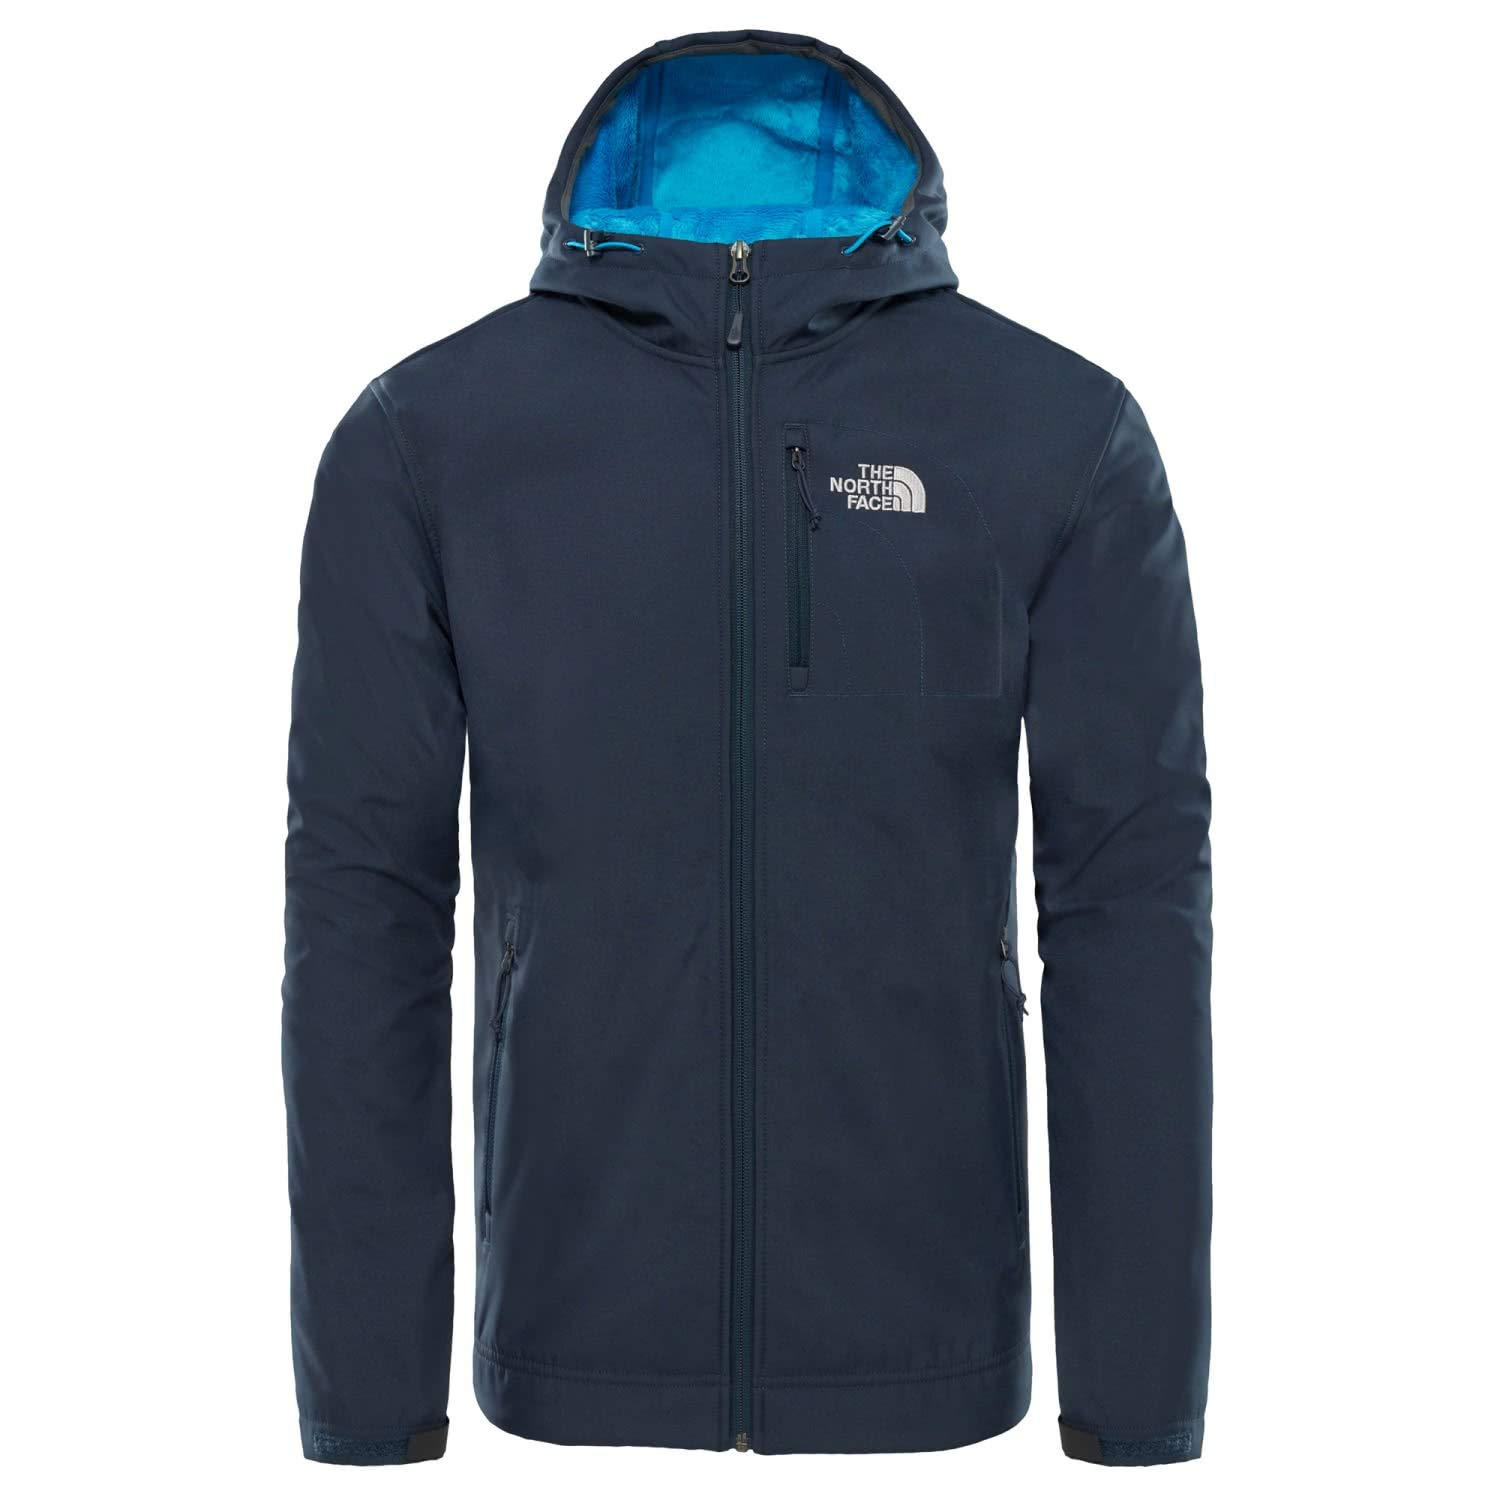 The North Face Durango - Chaqueta Hombre - Azul 2018